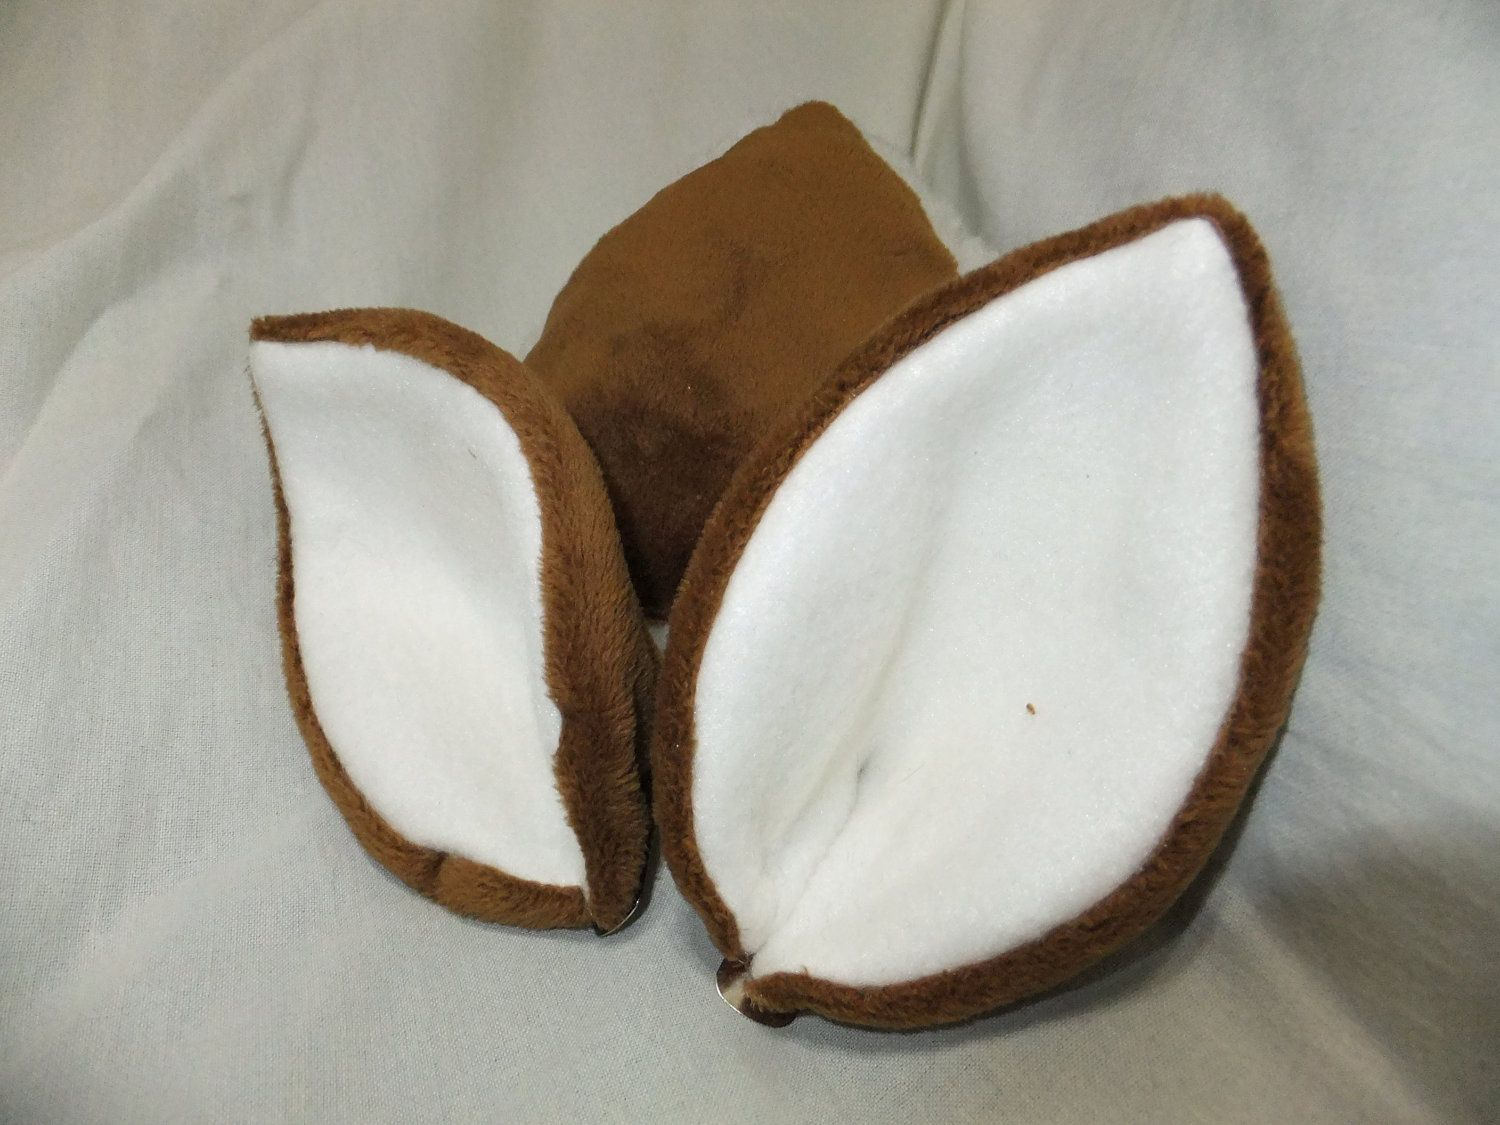 Clip-On Deer Ears and Tail & Clip-On Deer Ears and Tail   Shops Homemade and Halloween